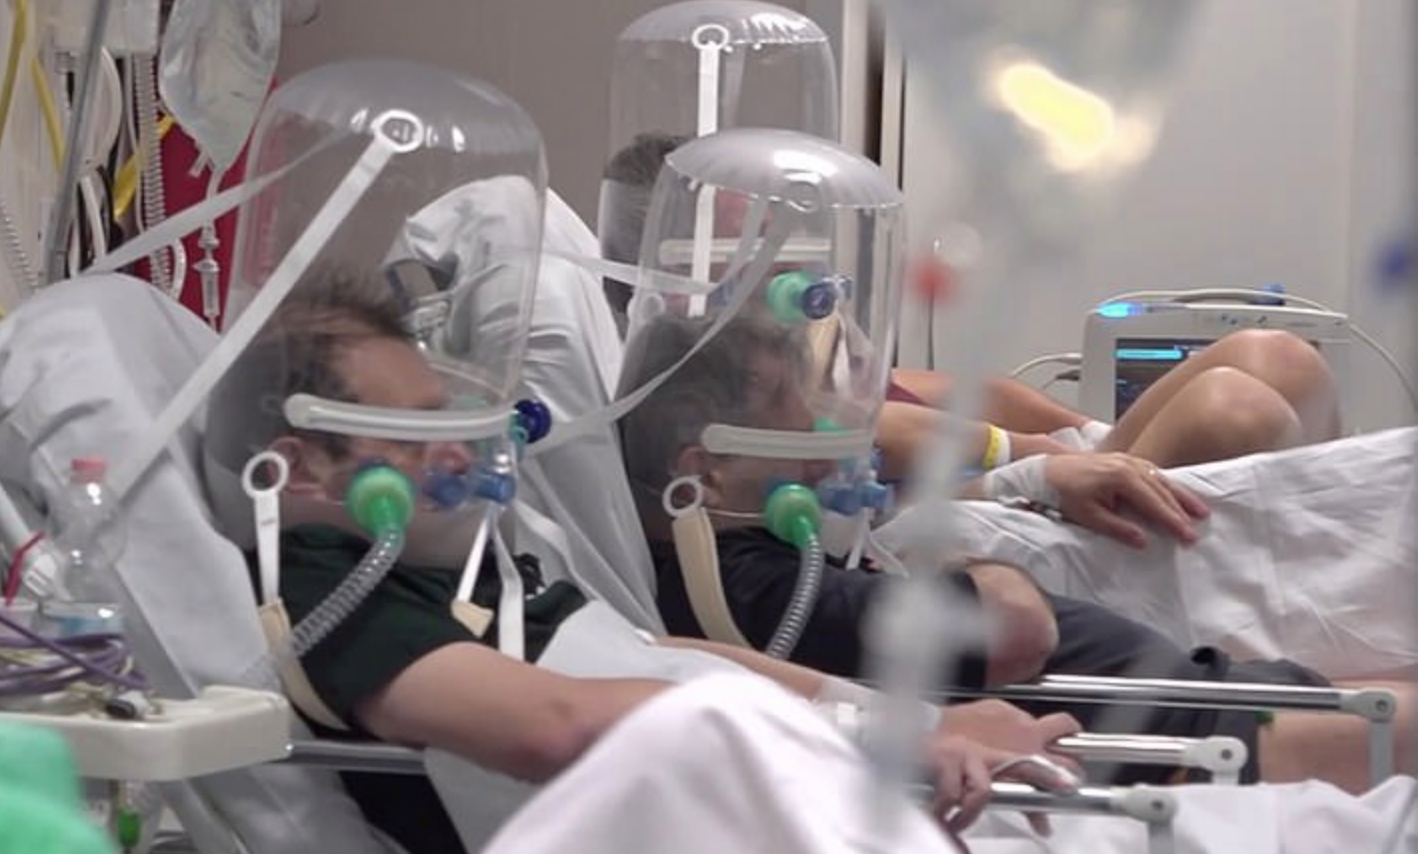 Patients in northern Italy wear bubble-like apparatus on their heads to help with their breathing